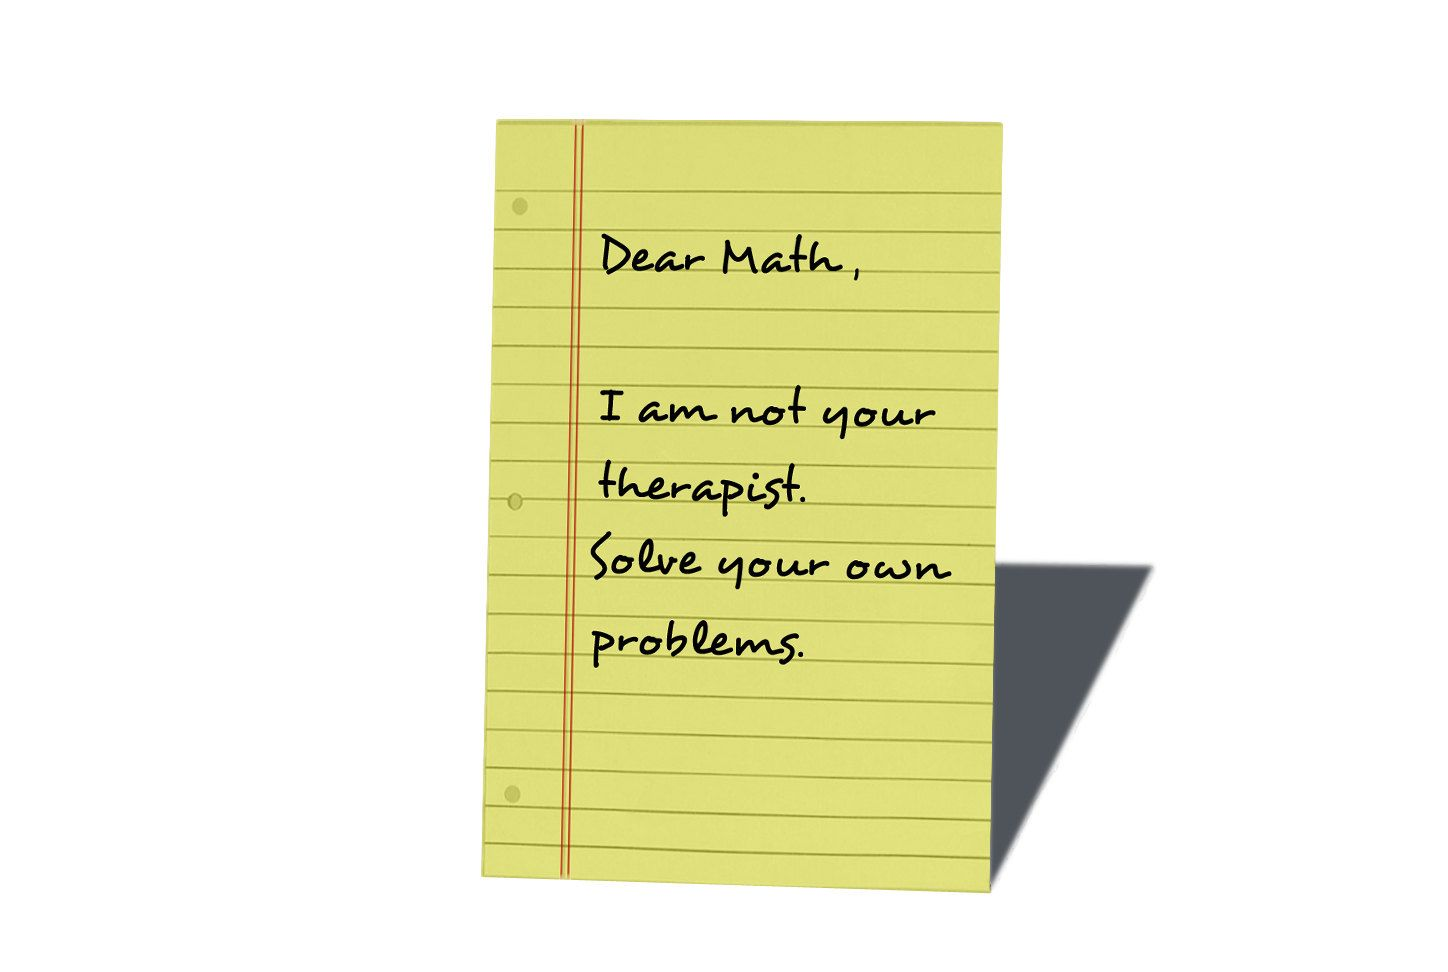 Wishing It Was That Simple Lol Funny Math Quotes Math Quotes Math Humor